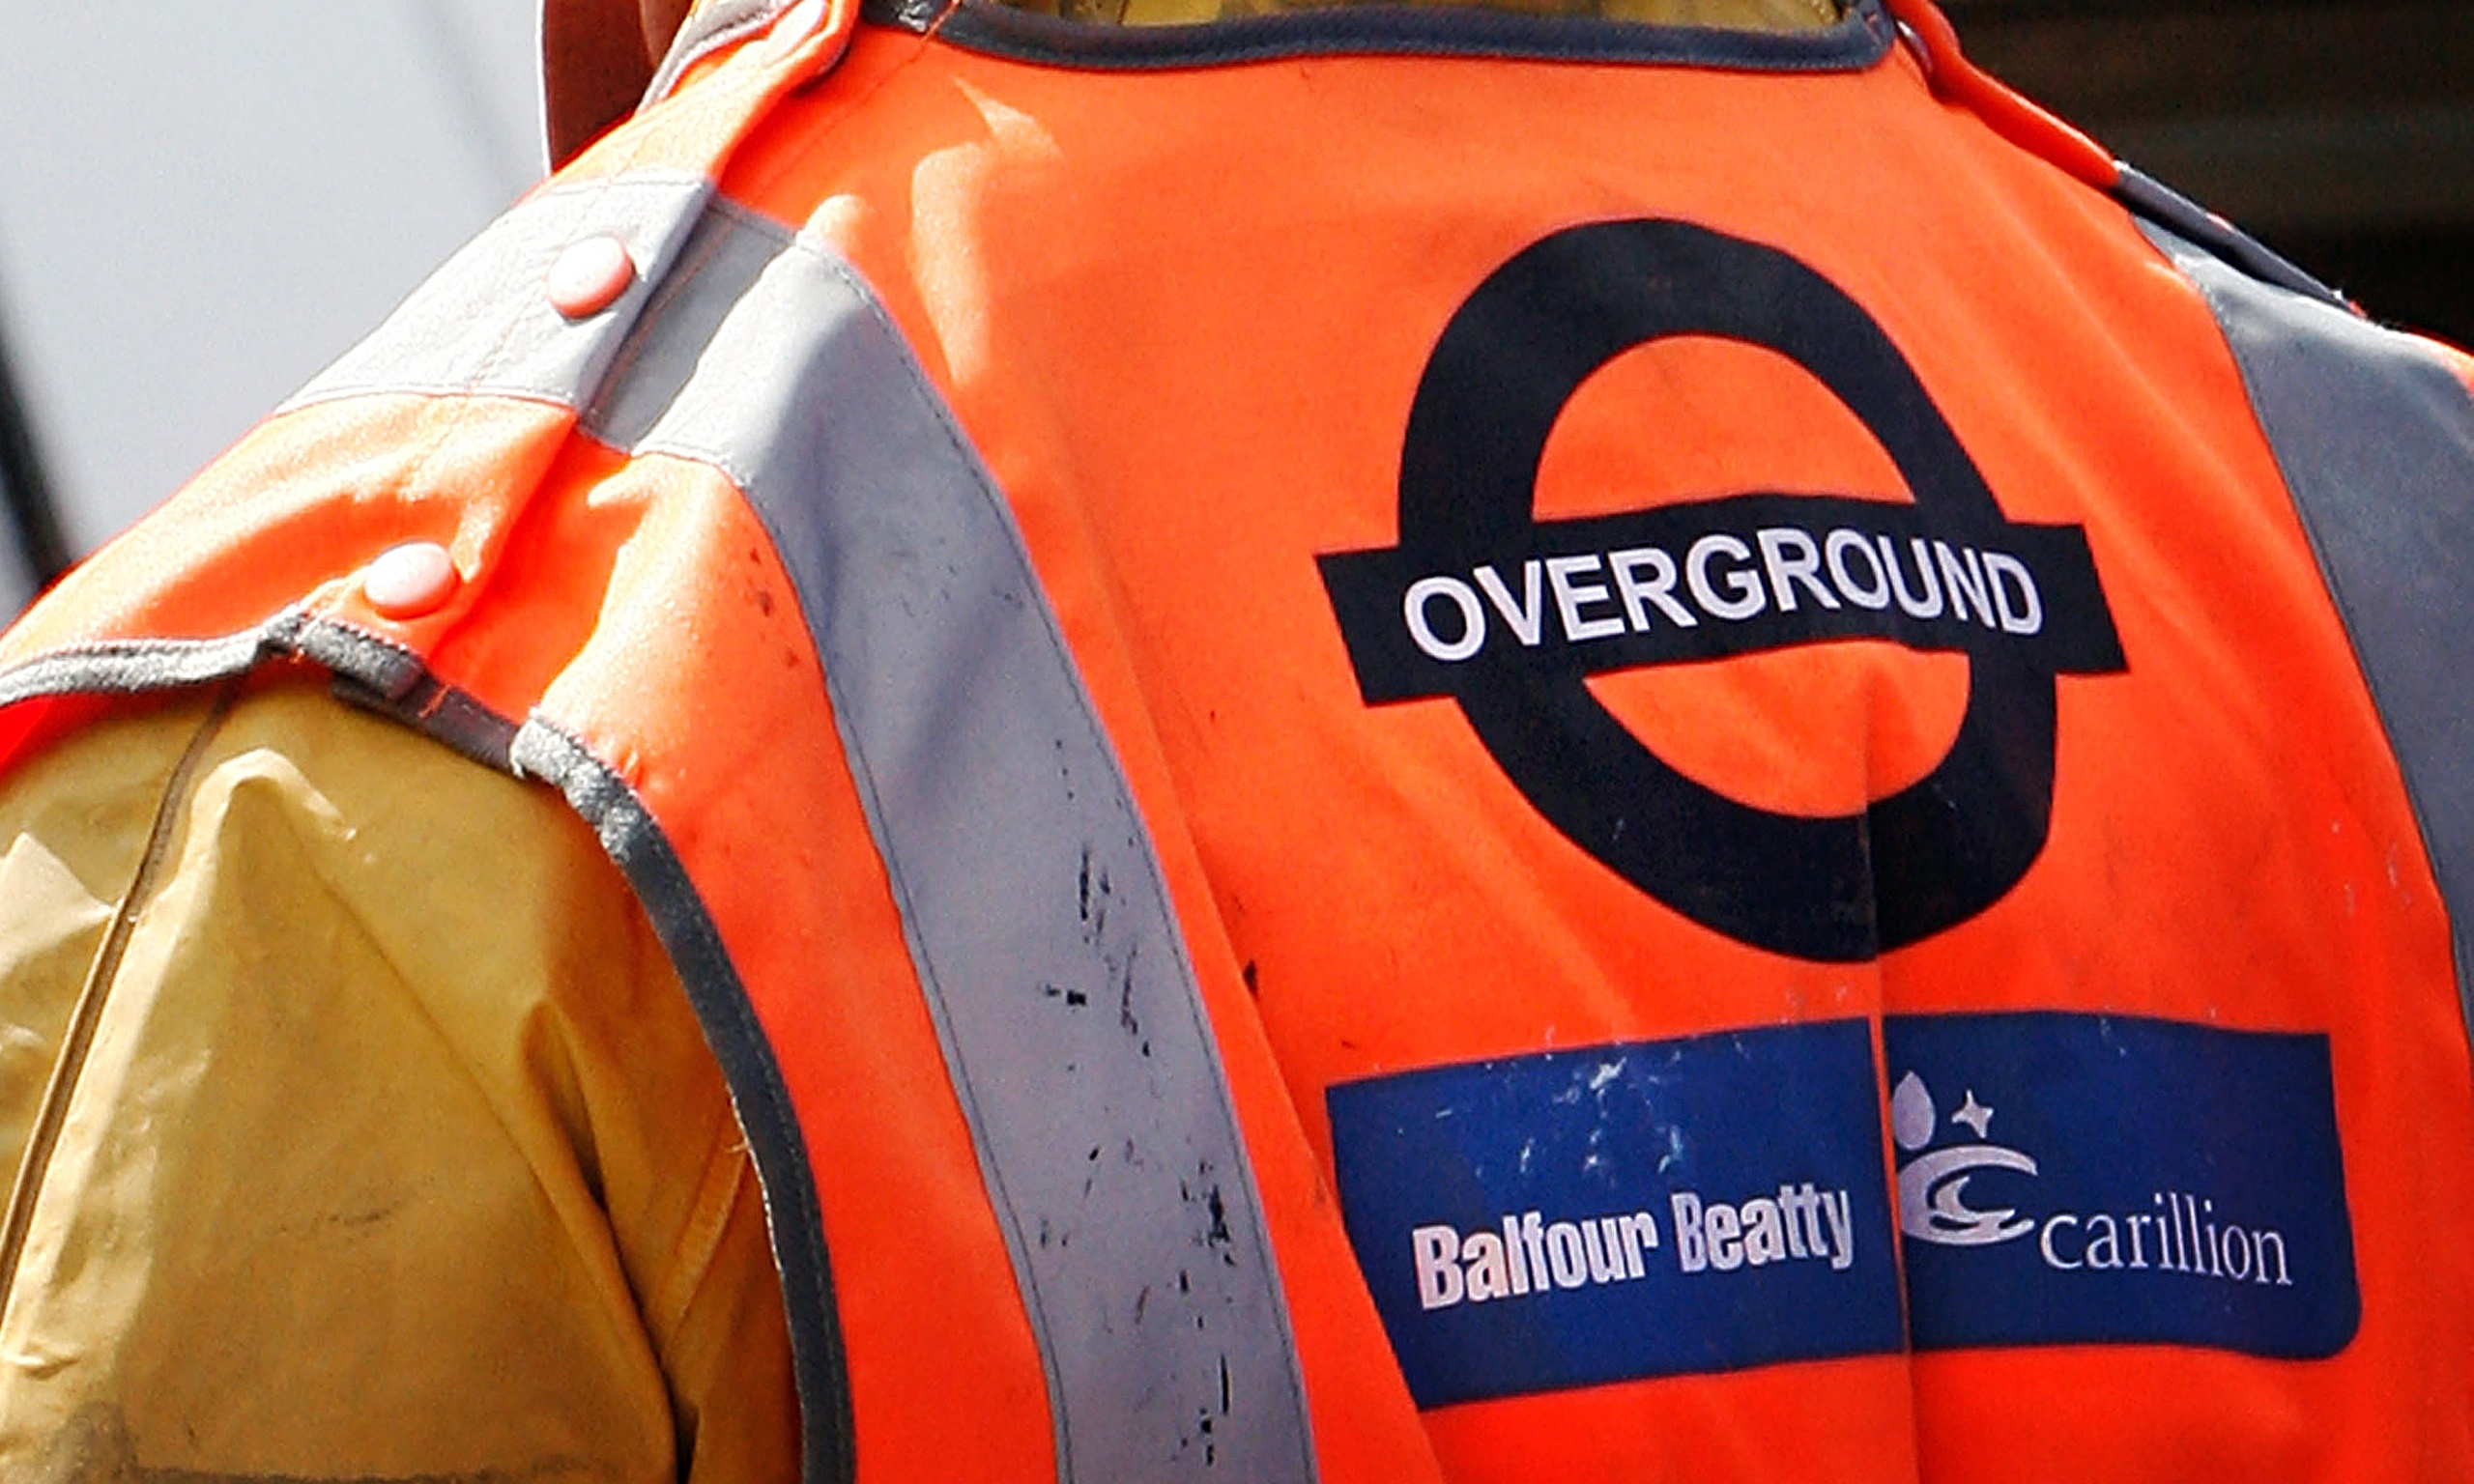 Balfour Beatty and Carillion in £3bn merger talks